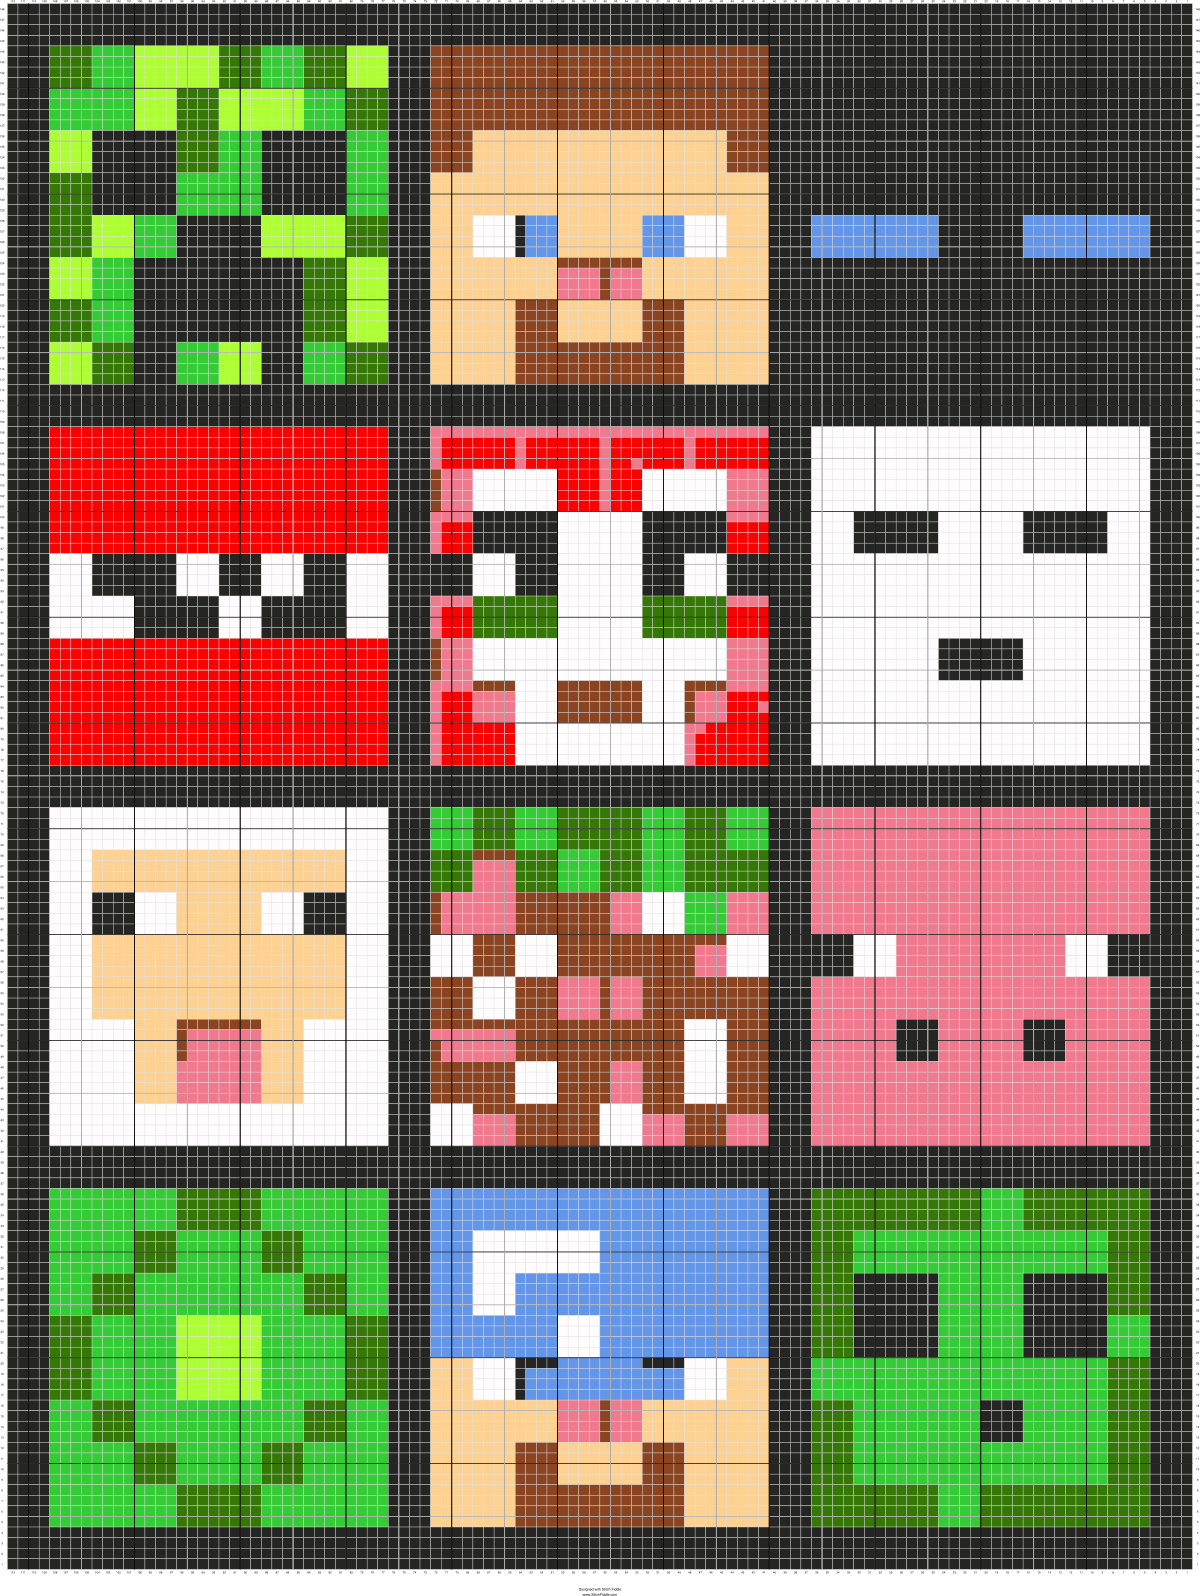 Minecraft Crafts Cross stitch pattern maker Stitch